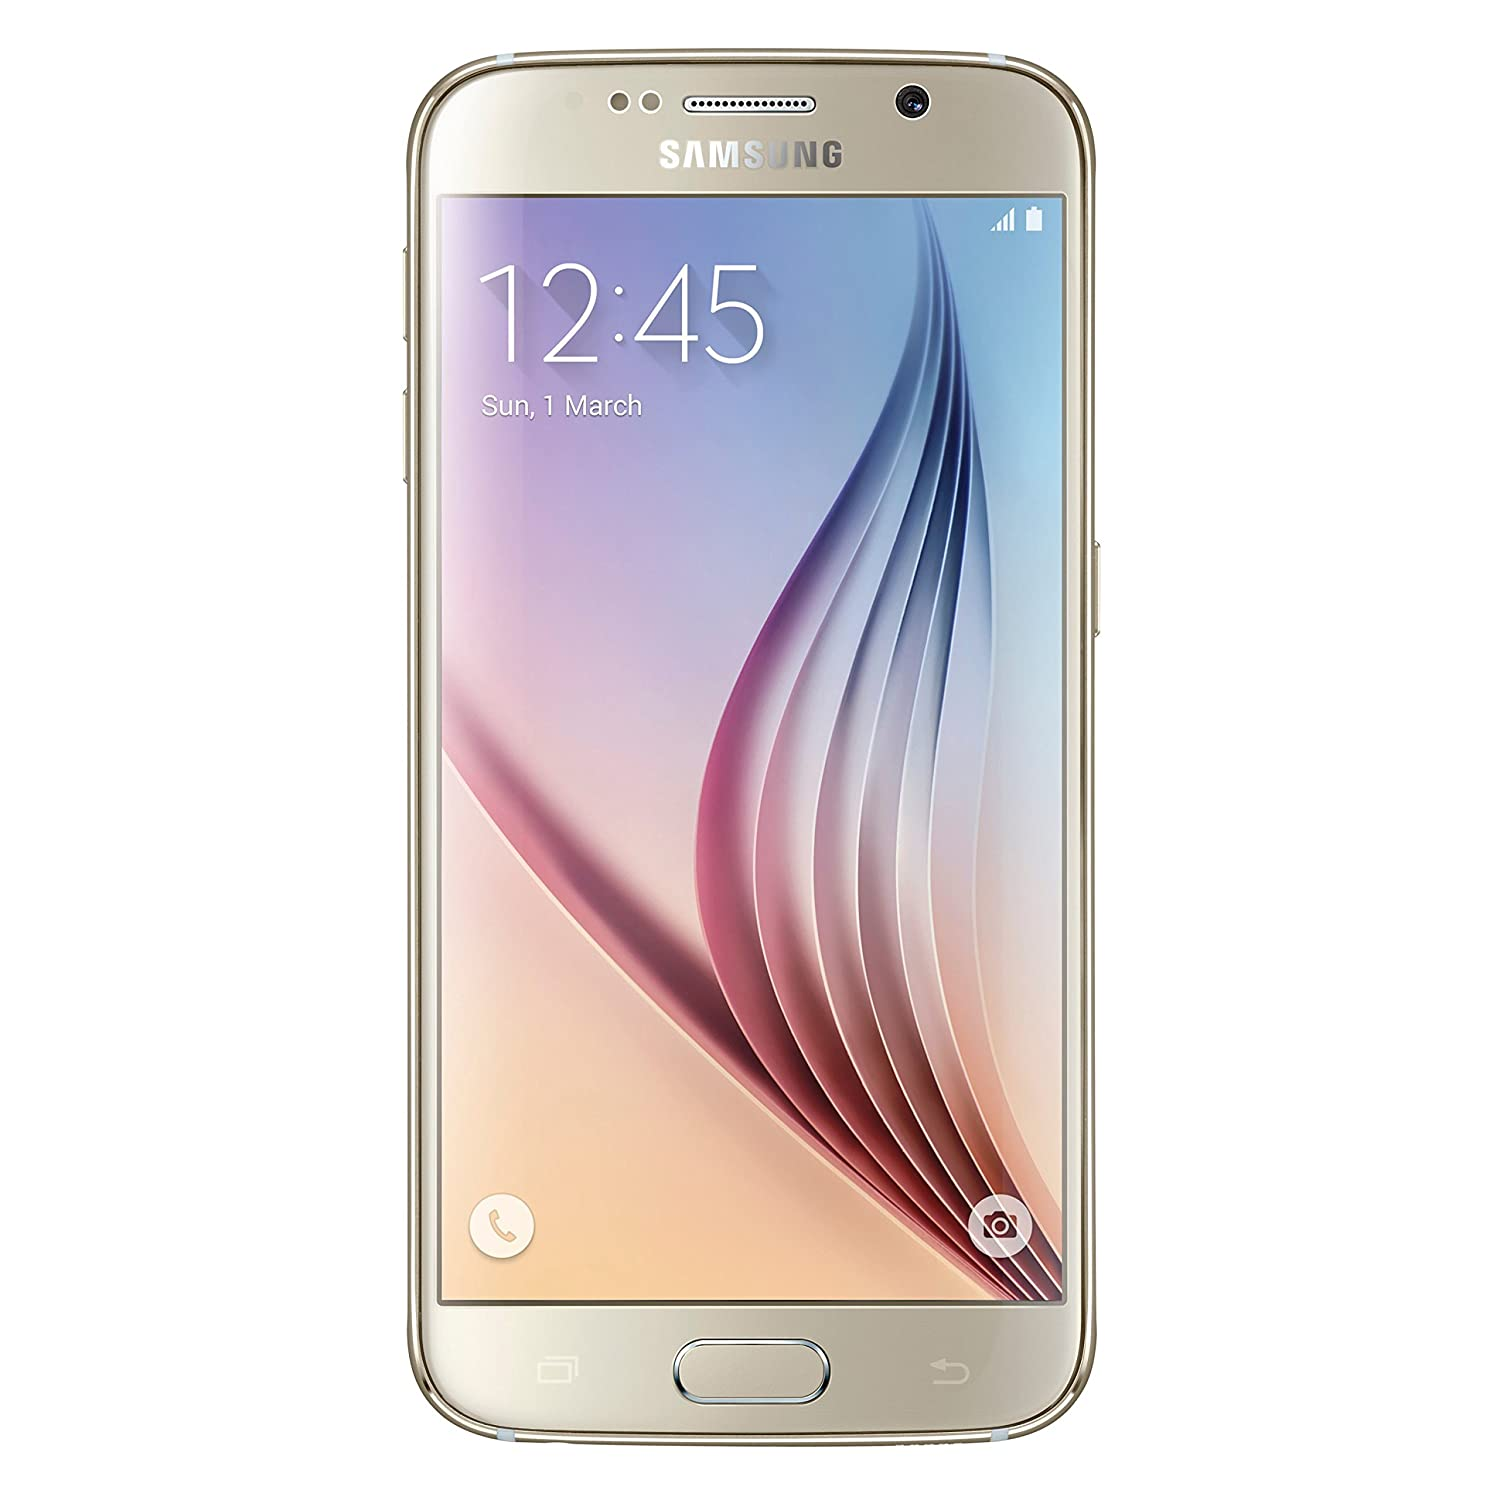 Amazon Samsung Galaxy S6 G920V 64GB Verizon CDMA 4G LTE Octa Core Smartphone w 16MP Camera Gold Certified Refurbished Good Condition Cell Phones